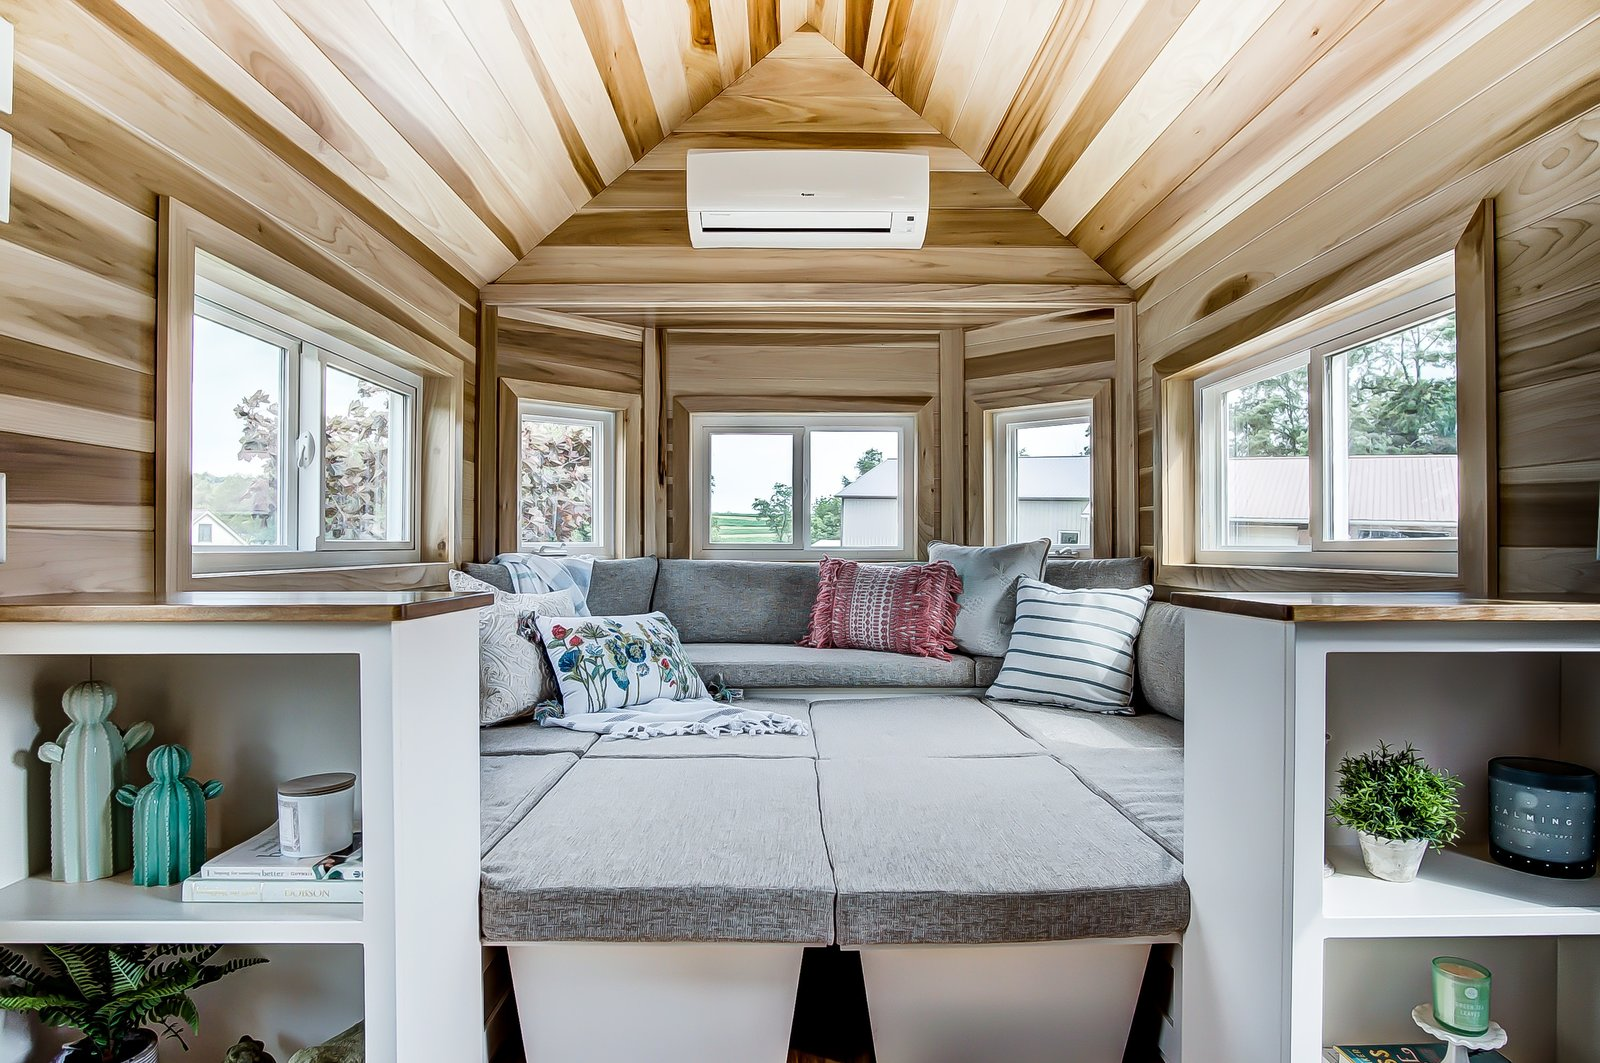 Living Room, Shelves, Sofa, and Bench The living room is designed as an elevated U-shaped sitting lounge. This space is surrounded by windows that draw in plenty of natural light.    Photo 3 of 11 in This 270-Square-Foot Tiny Home Is Now Up For Grabs at $89K